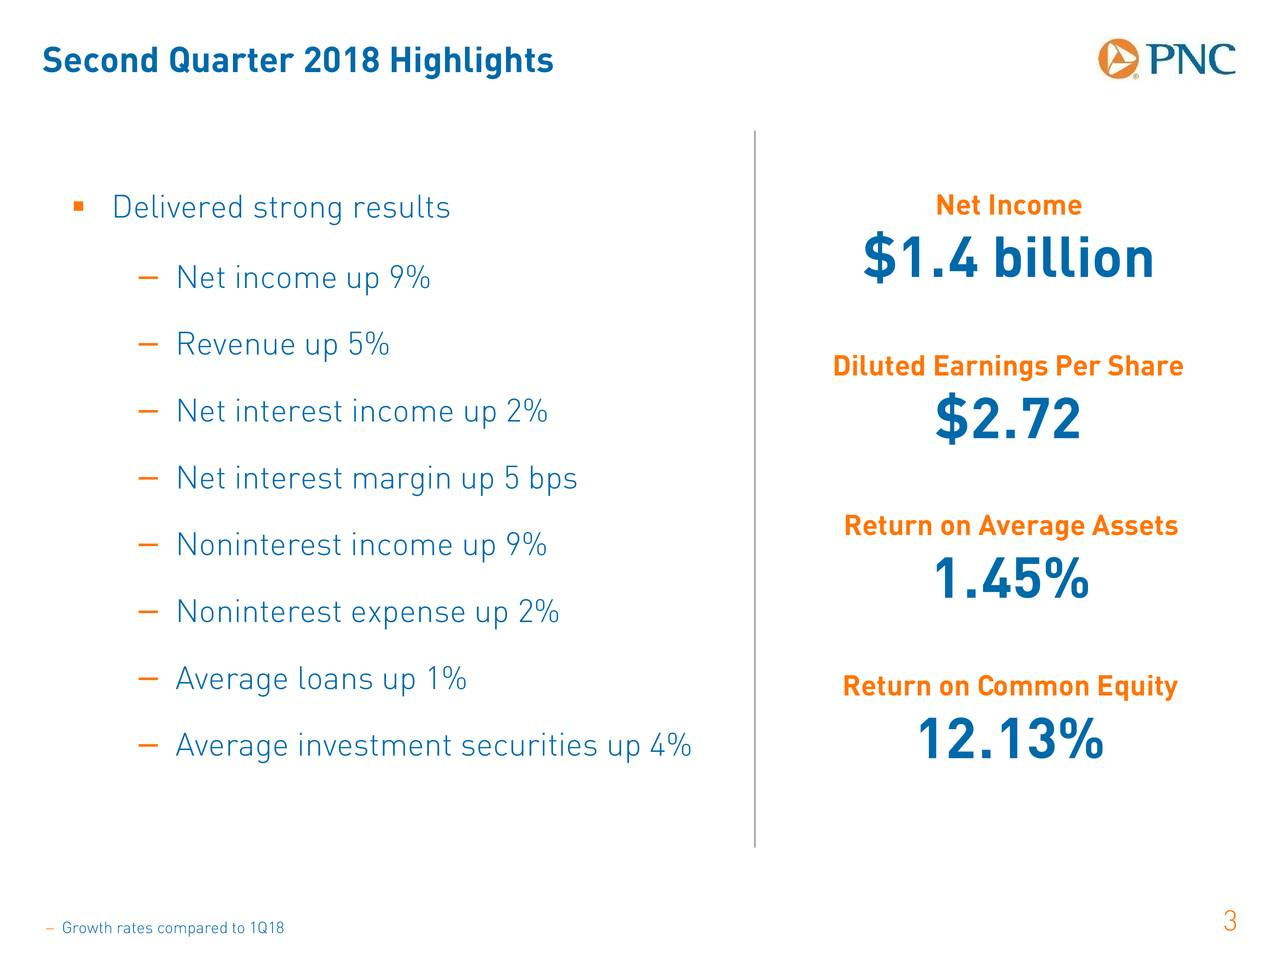 Second Quarter 2018 Highlights